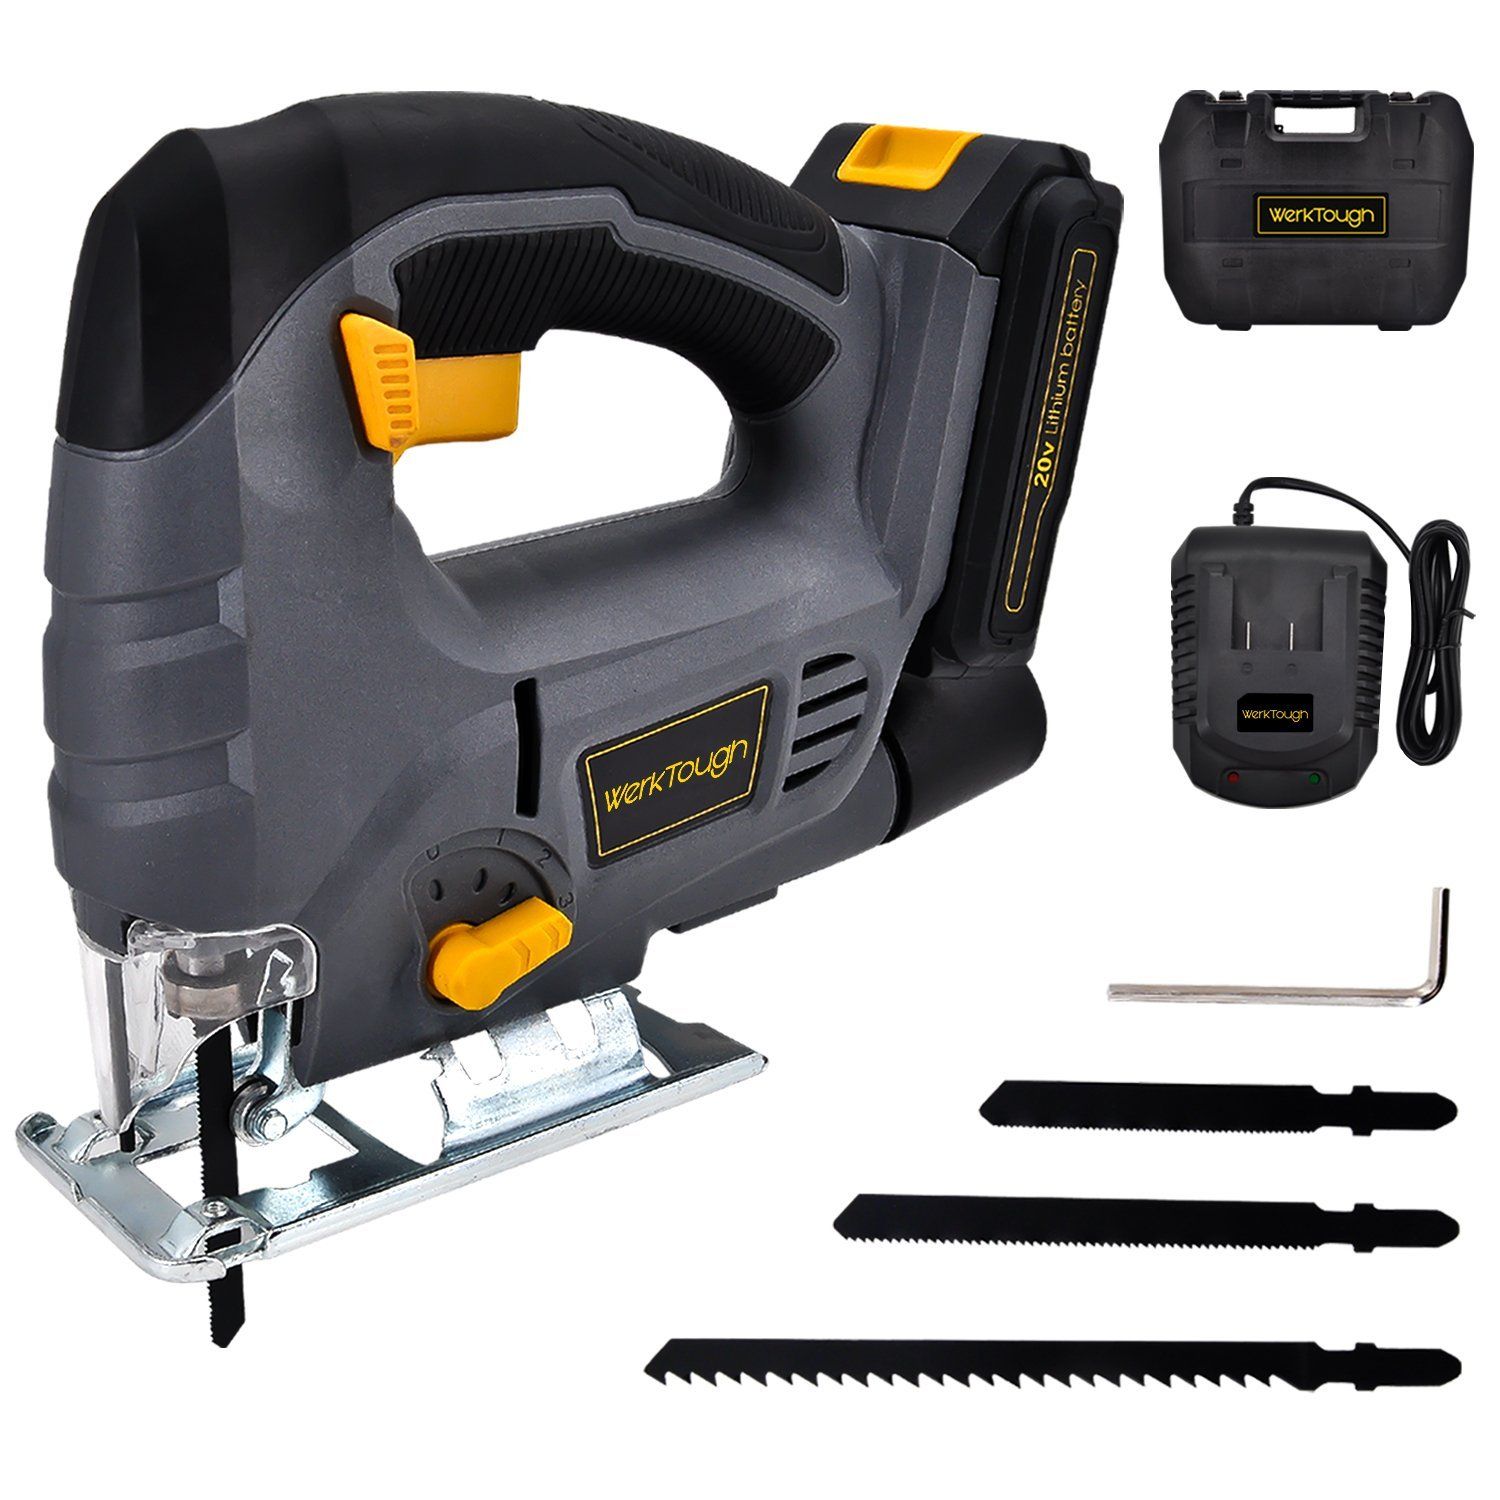 20V Li-ion Cordless Jig Saw Battery Charger Included by Werktough JS02